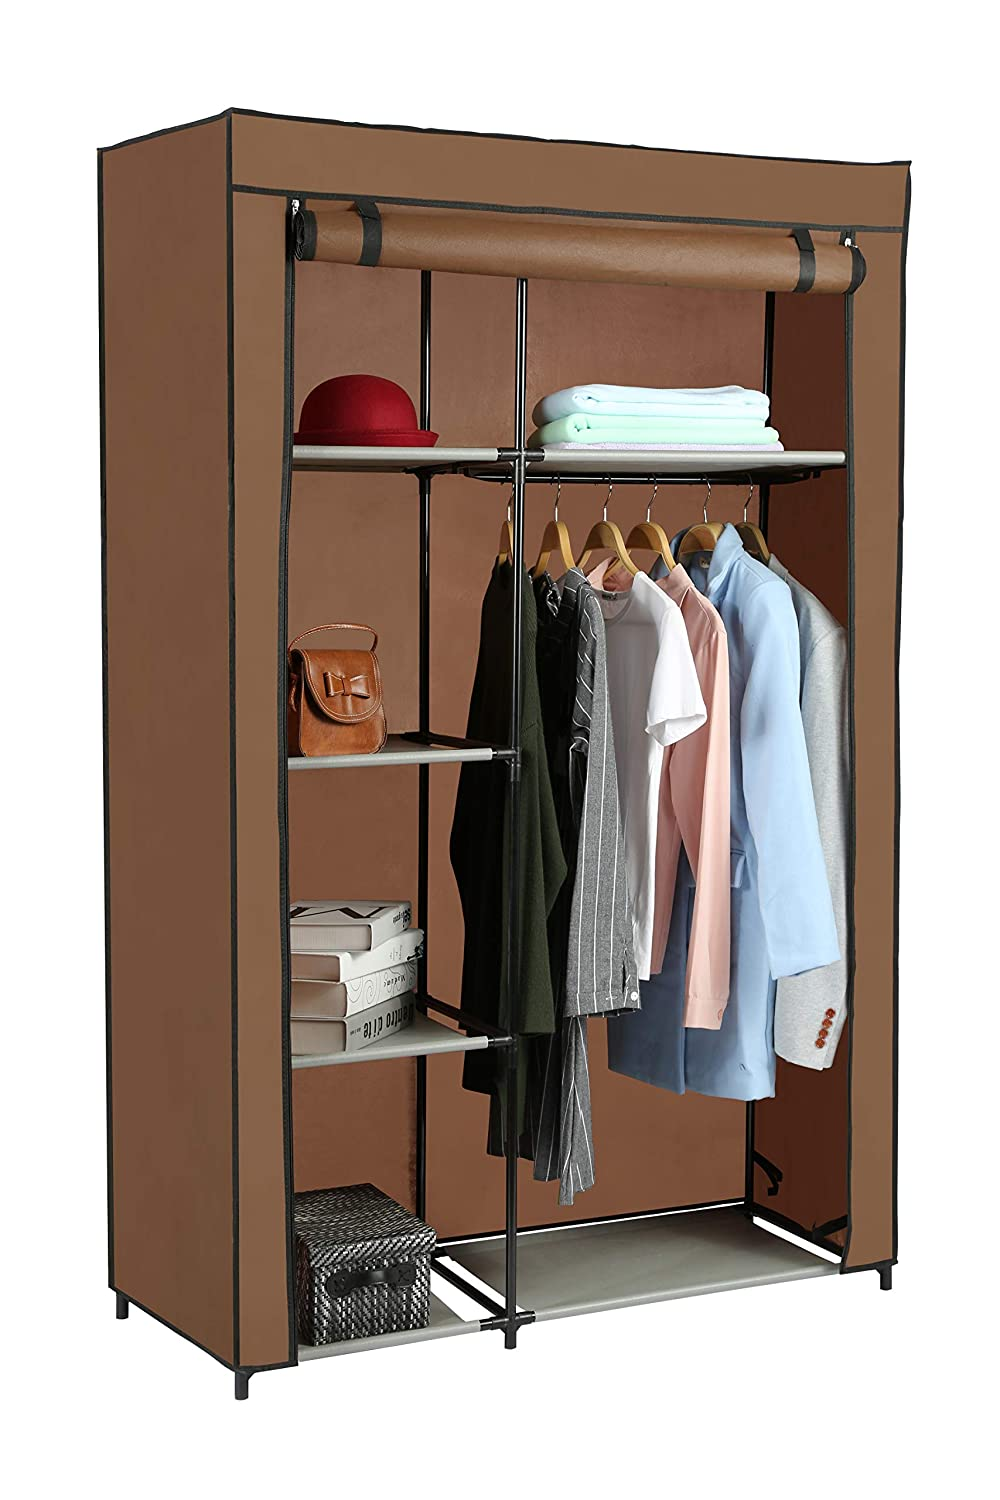 Home-Like Non-Woven Canvas Wardrobe Cloth Closet Bedroom Wardrobes Portable Wardrobe for Bedroom Storage Organizer with Hanging Rail Temporary Wardrobe for Dorm Apartment Black Color106x45x166cm (Black)